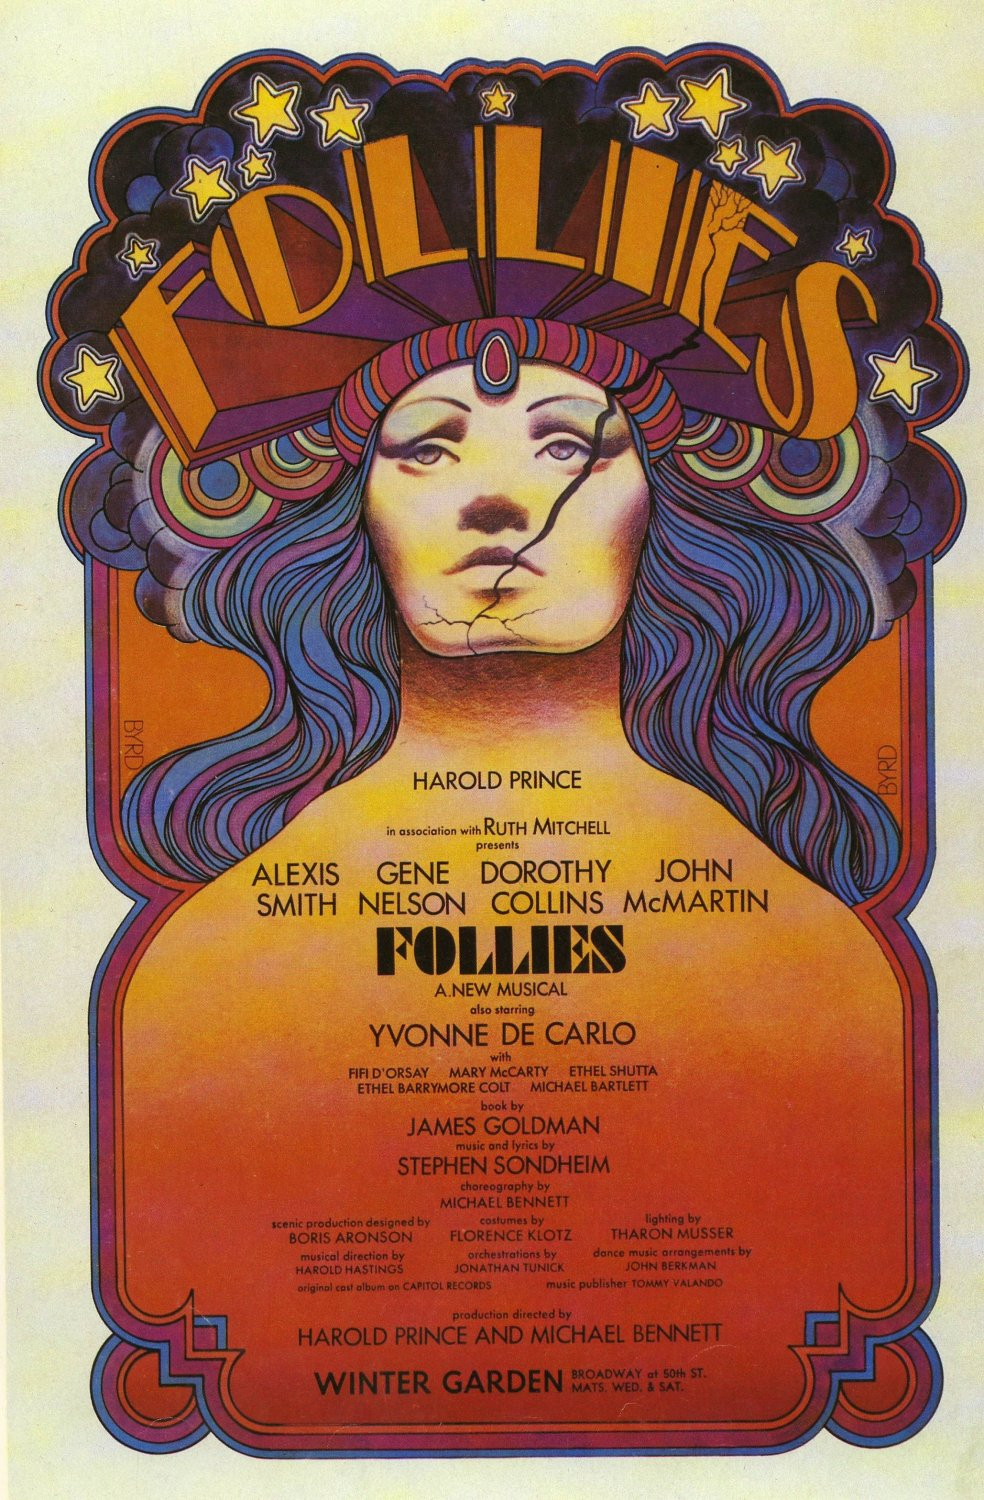 Follies 1971 Broadway Show Poster 18x24 inche